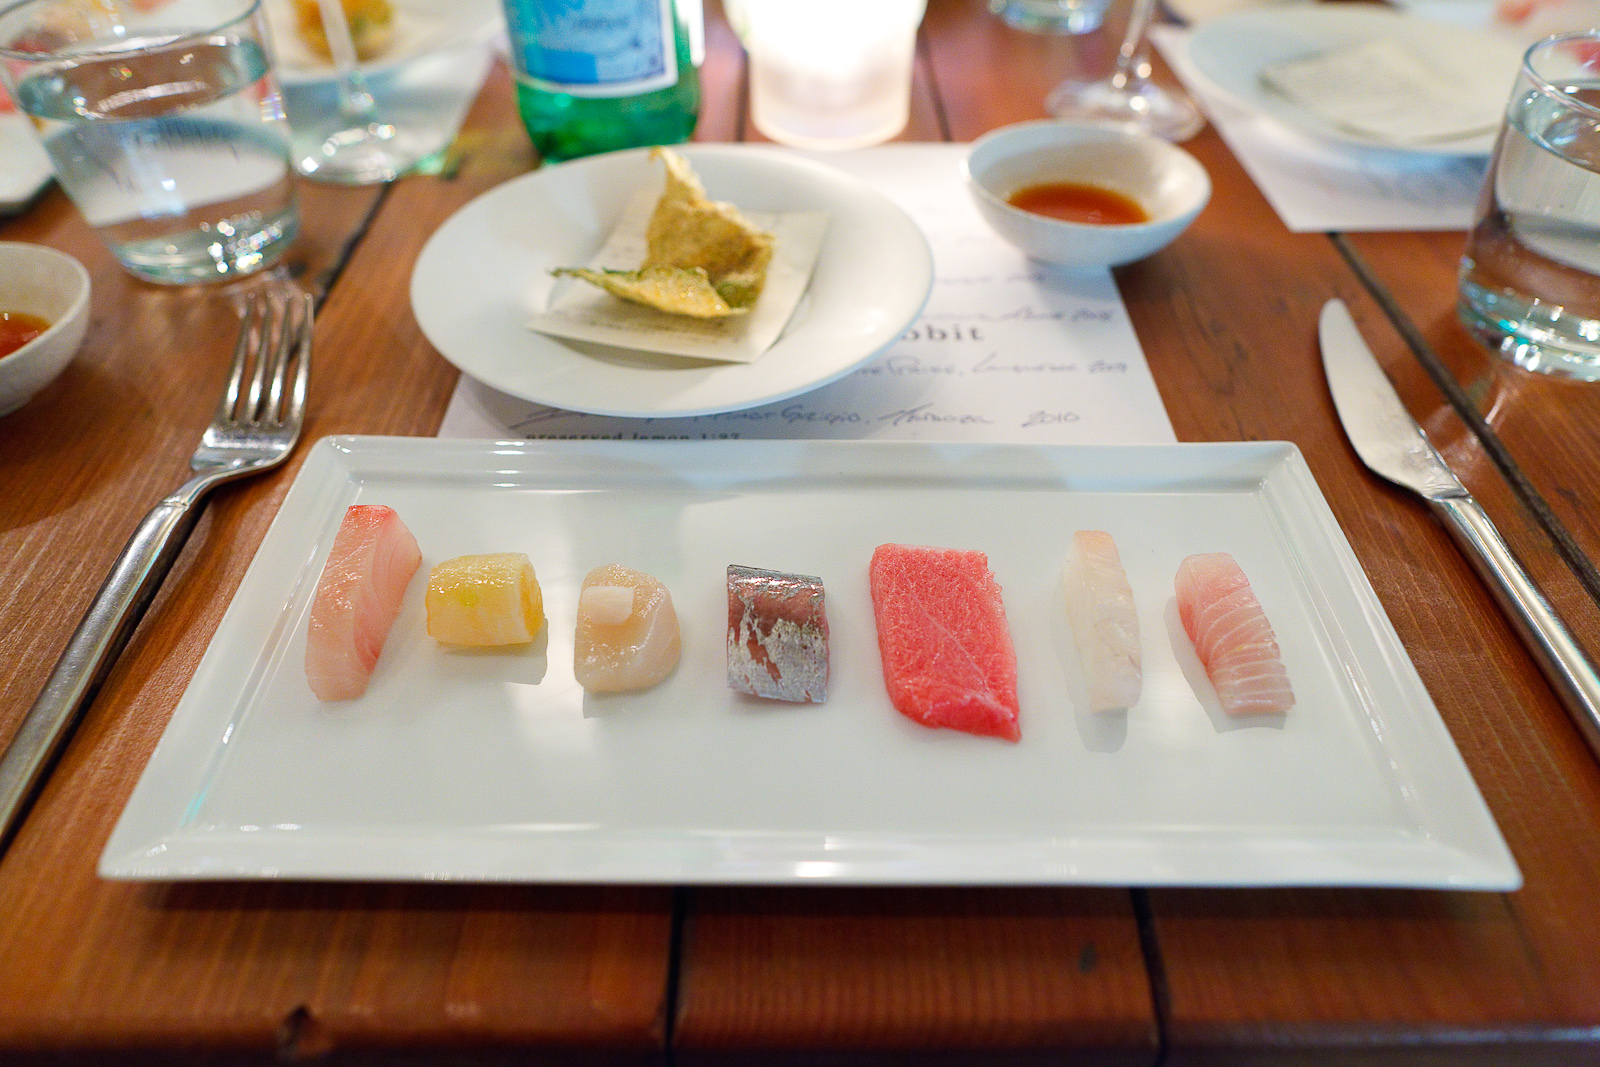 2nd Course: Flight of fish - Red sea bream, lobster tail wrapped in white radish, scallop, horse mackerel, ahi tuna belly, striped jack, amber jack.